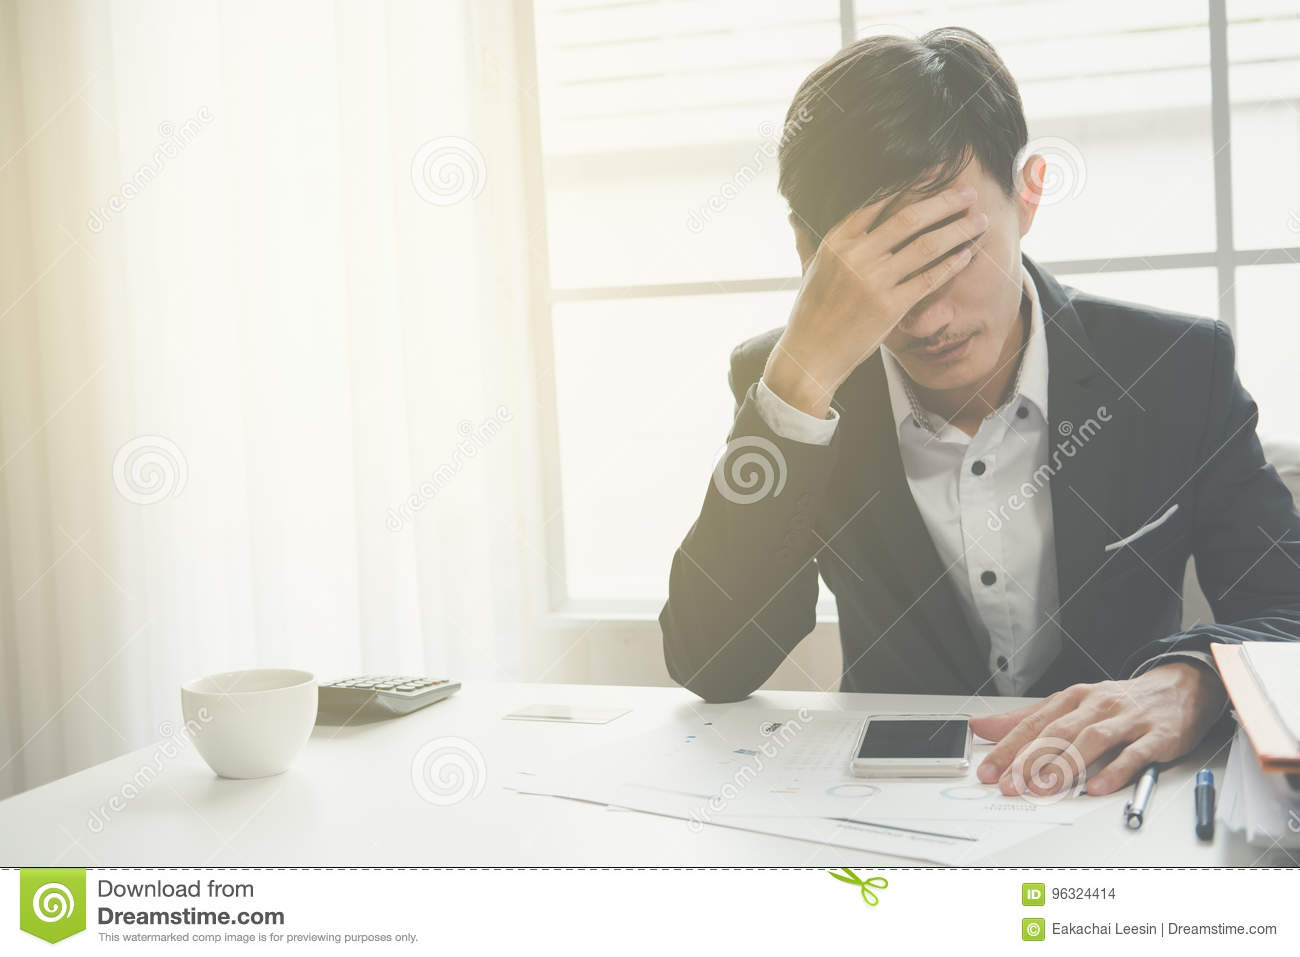 A stressed out business man holds his head in despair